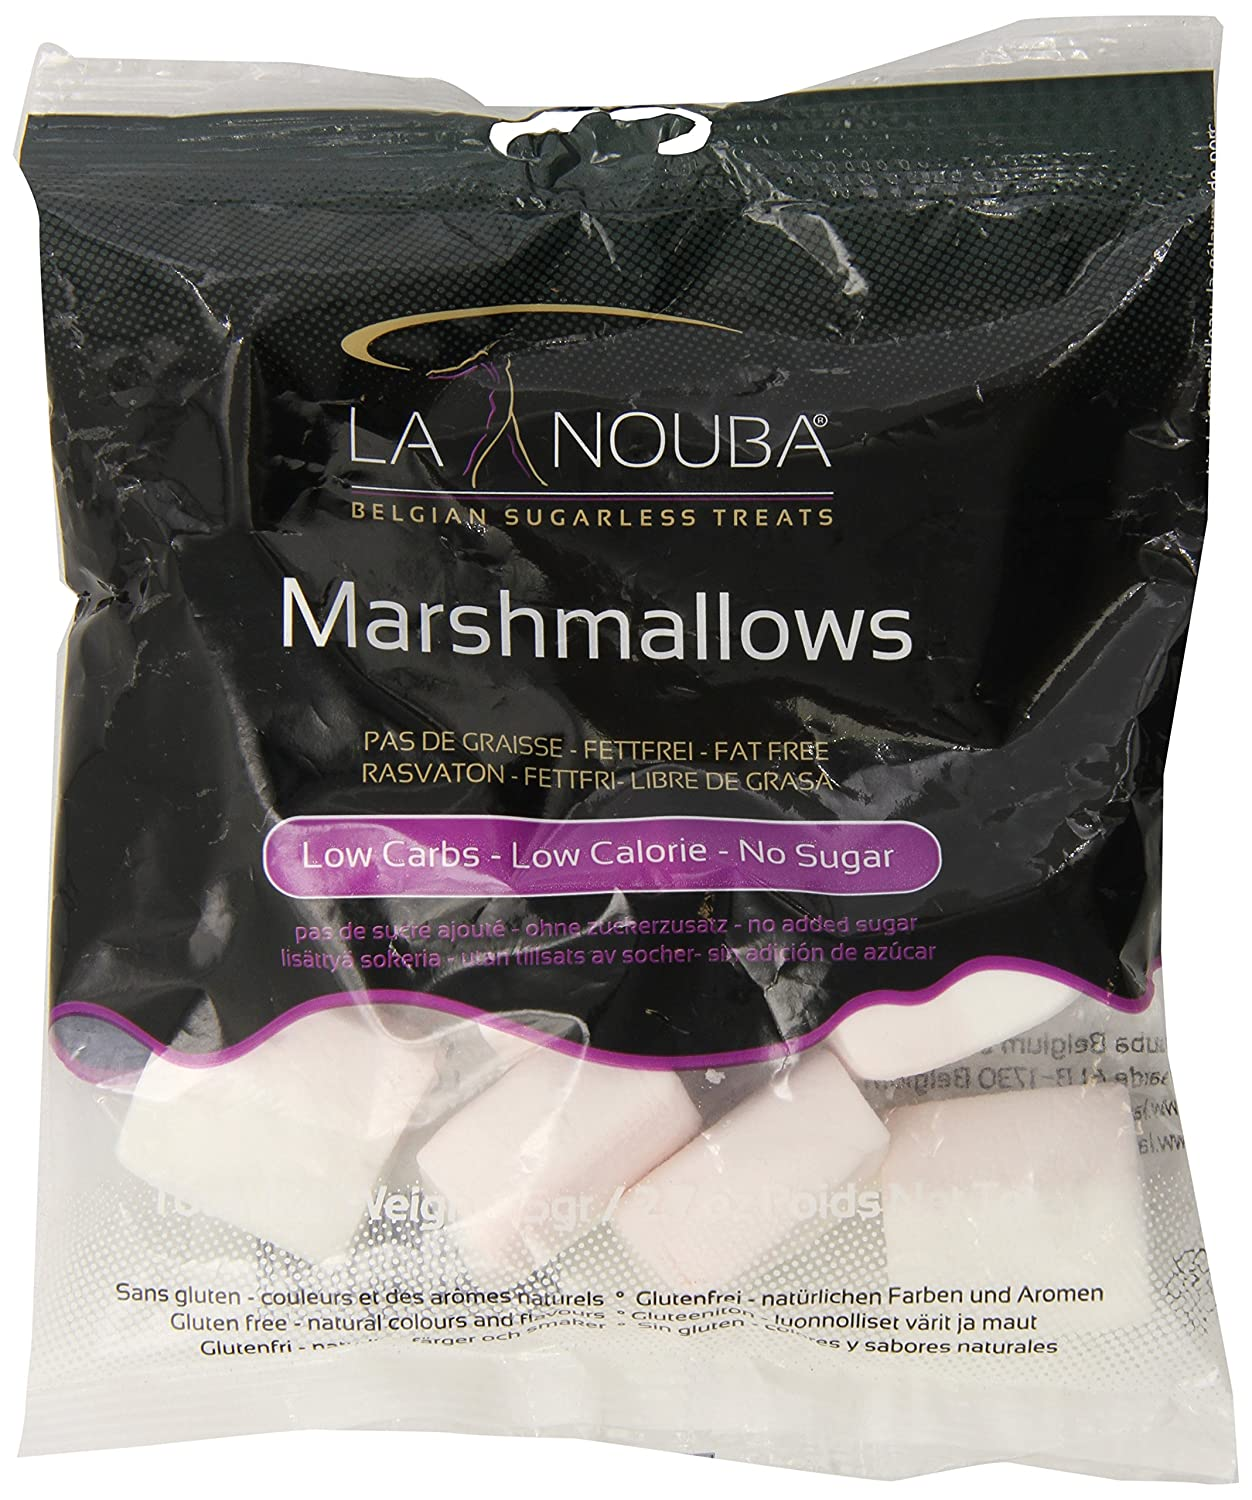 Is There Such Thing As Sugar Free Marshmallows?